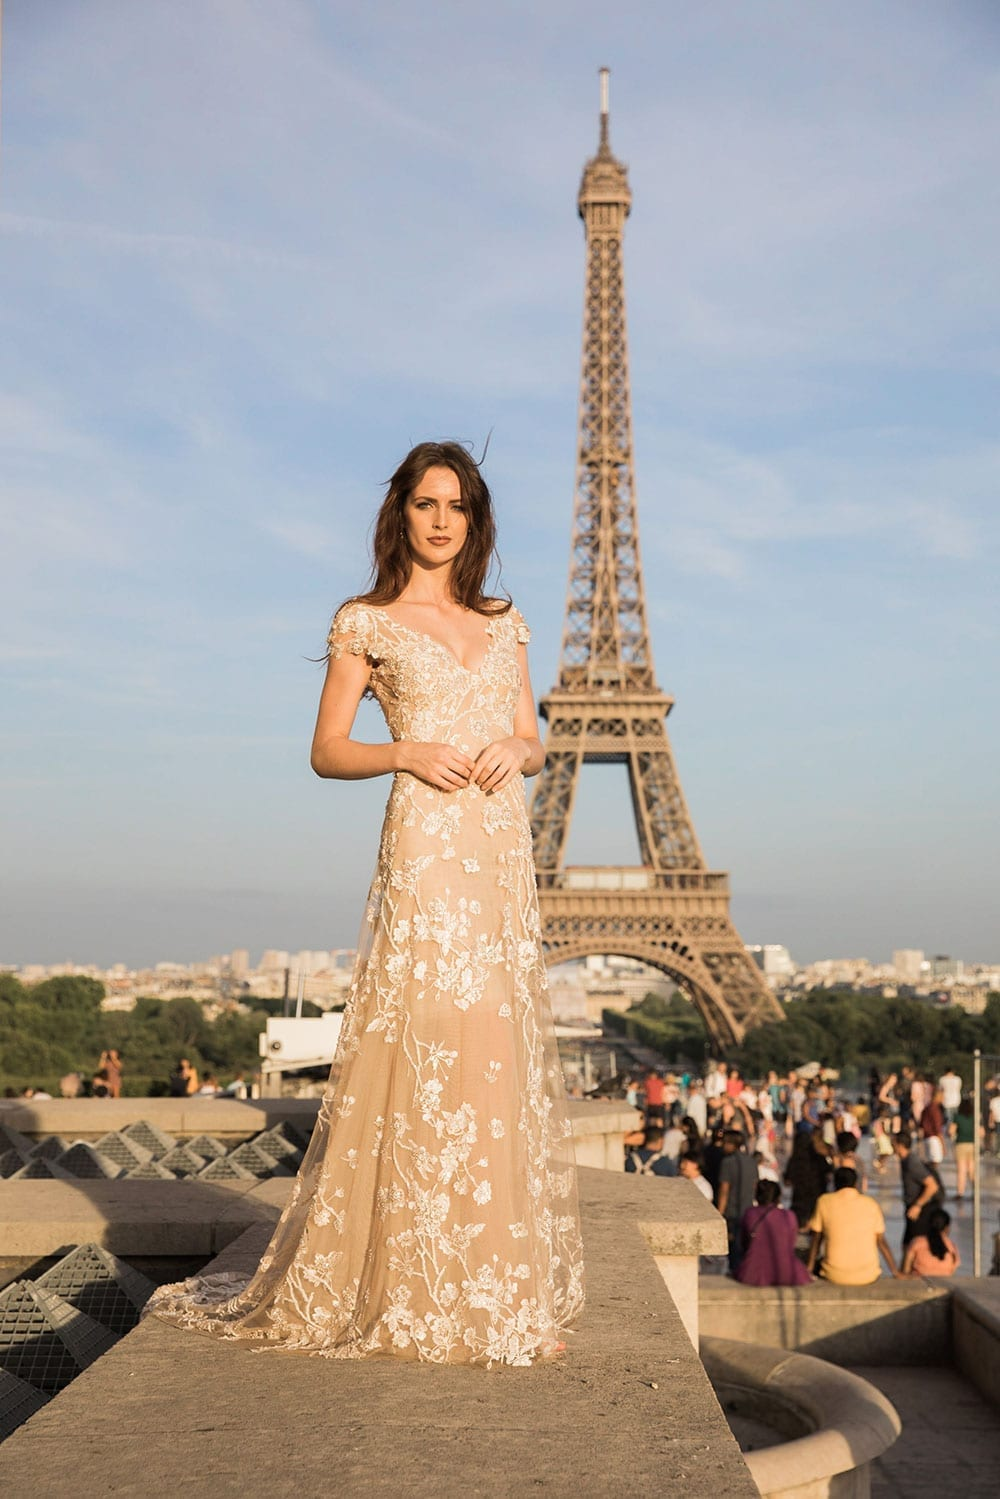 Model wearing Vinka Design Vianna Wedding Dress, a dreamy wedding dress with richly beaded embroidery on a nude base, a slightly sheer skirt and elegant train. Gorgeous low back, little cap sleeves and front v-neckline. Worn in Paris in front of Eiffel Tower - full length.